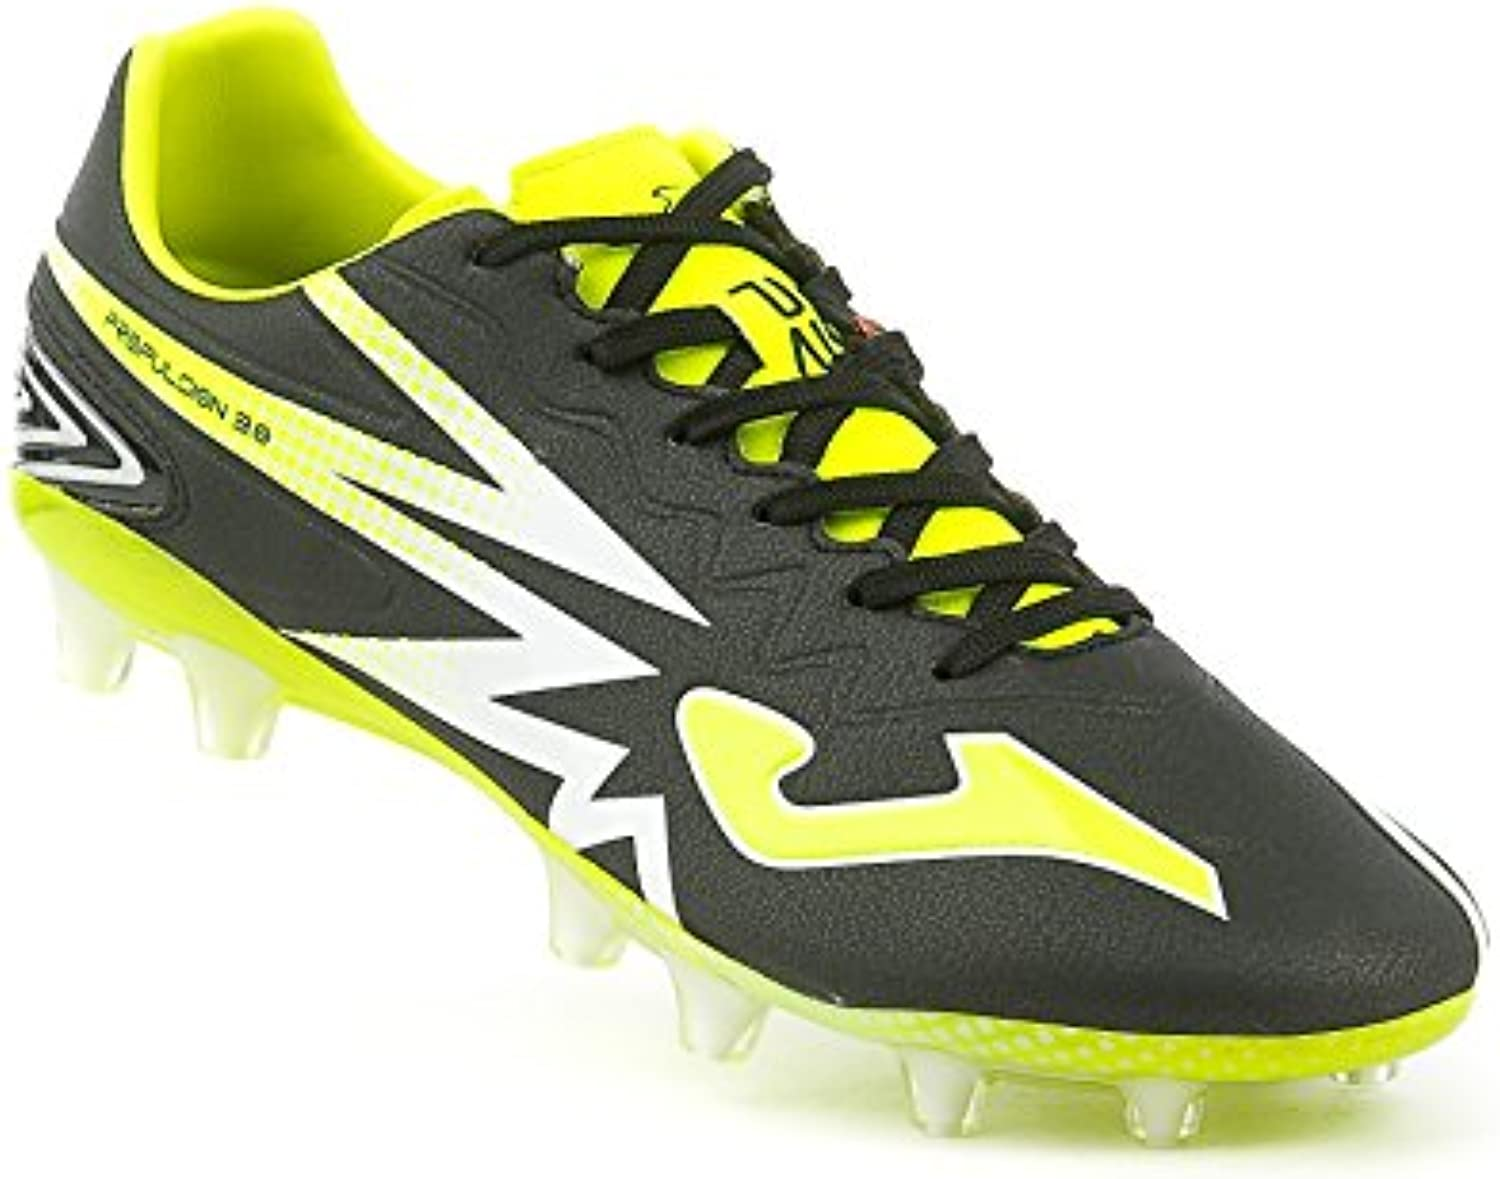 Propulsion 3.0 601 FG Football Boots   Black/Yellow   size 9